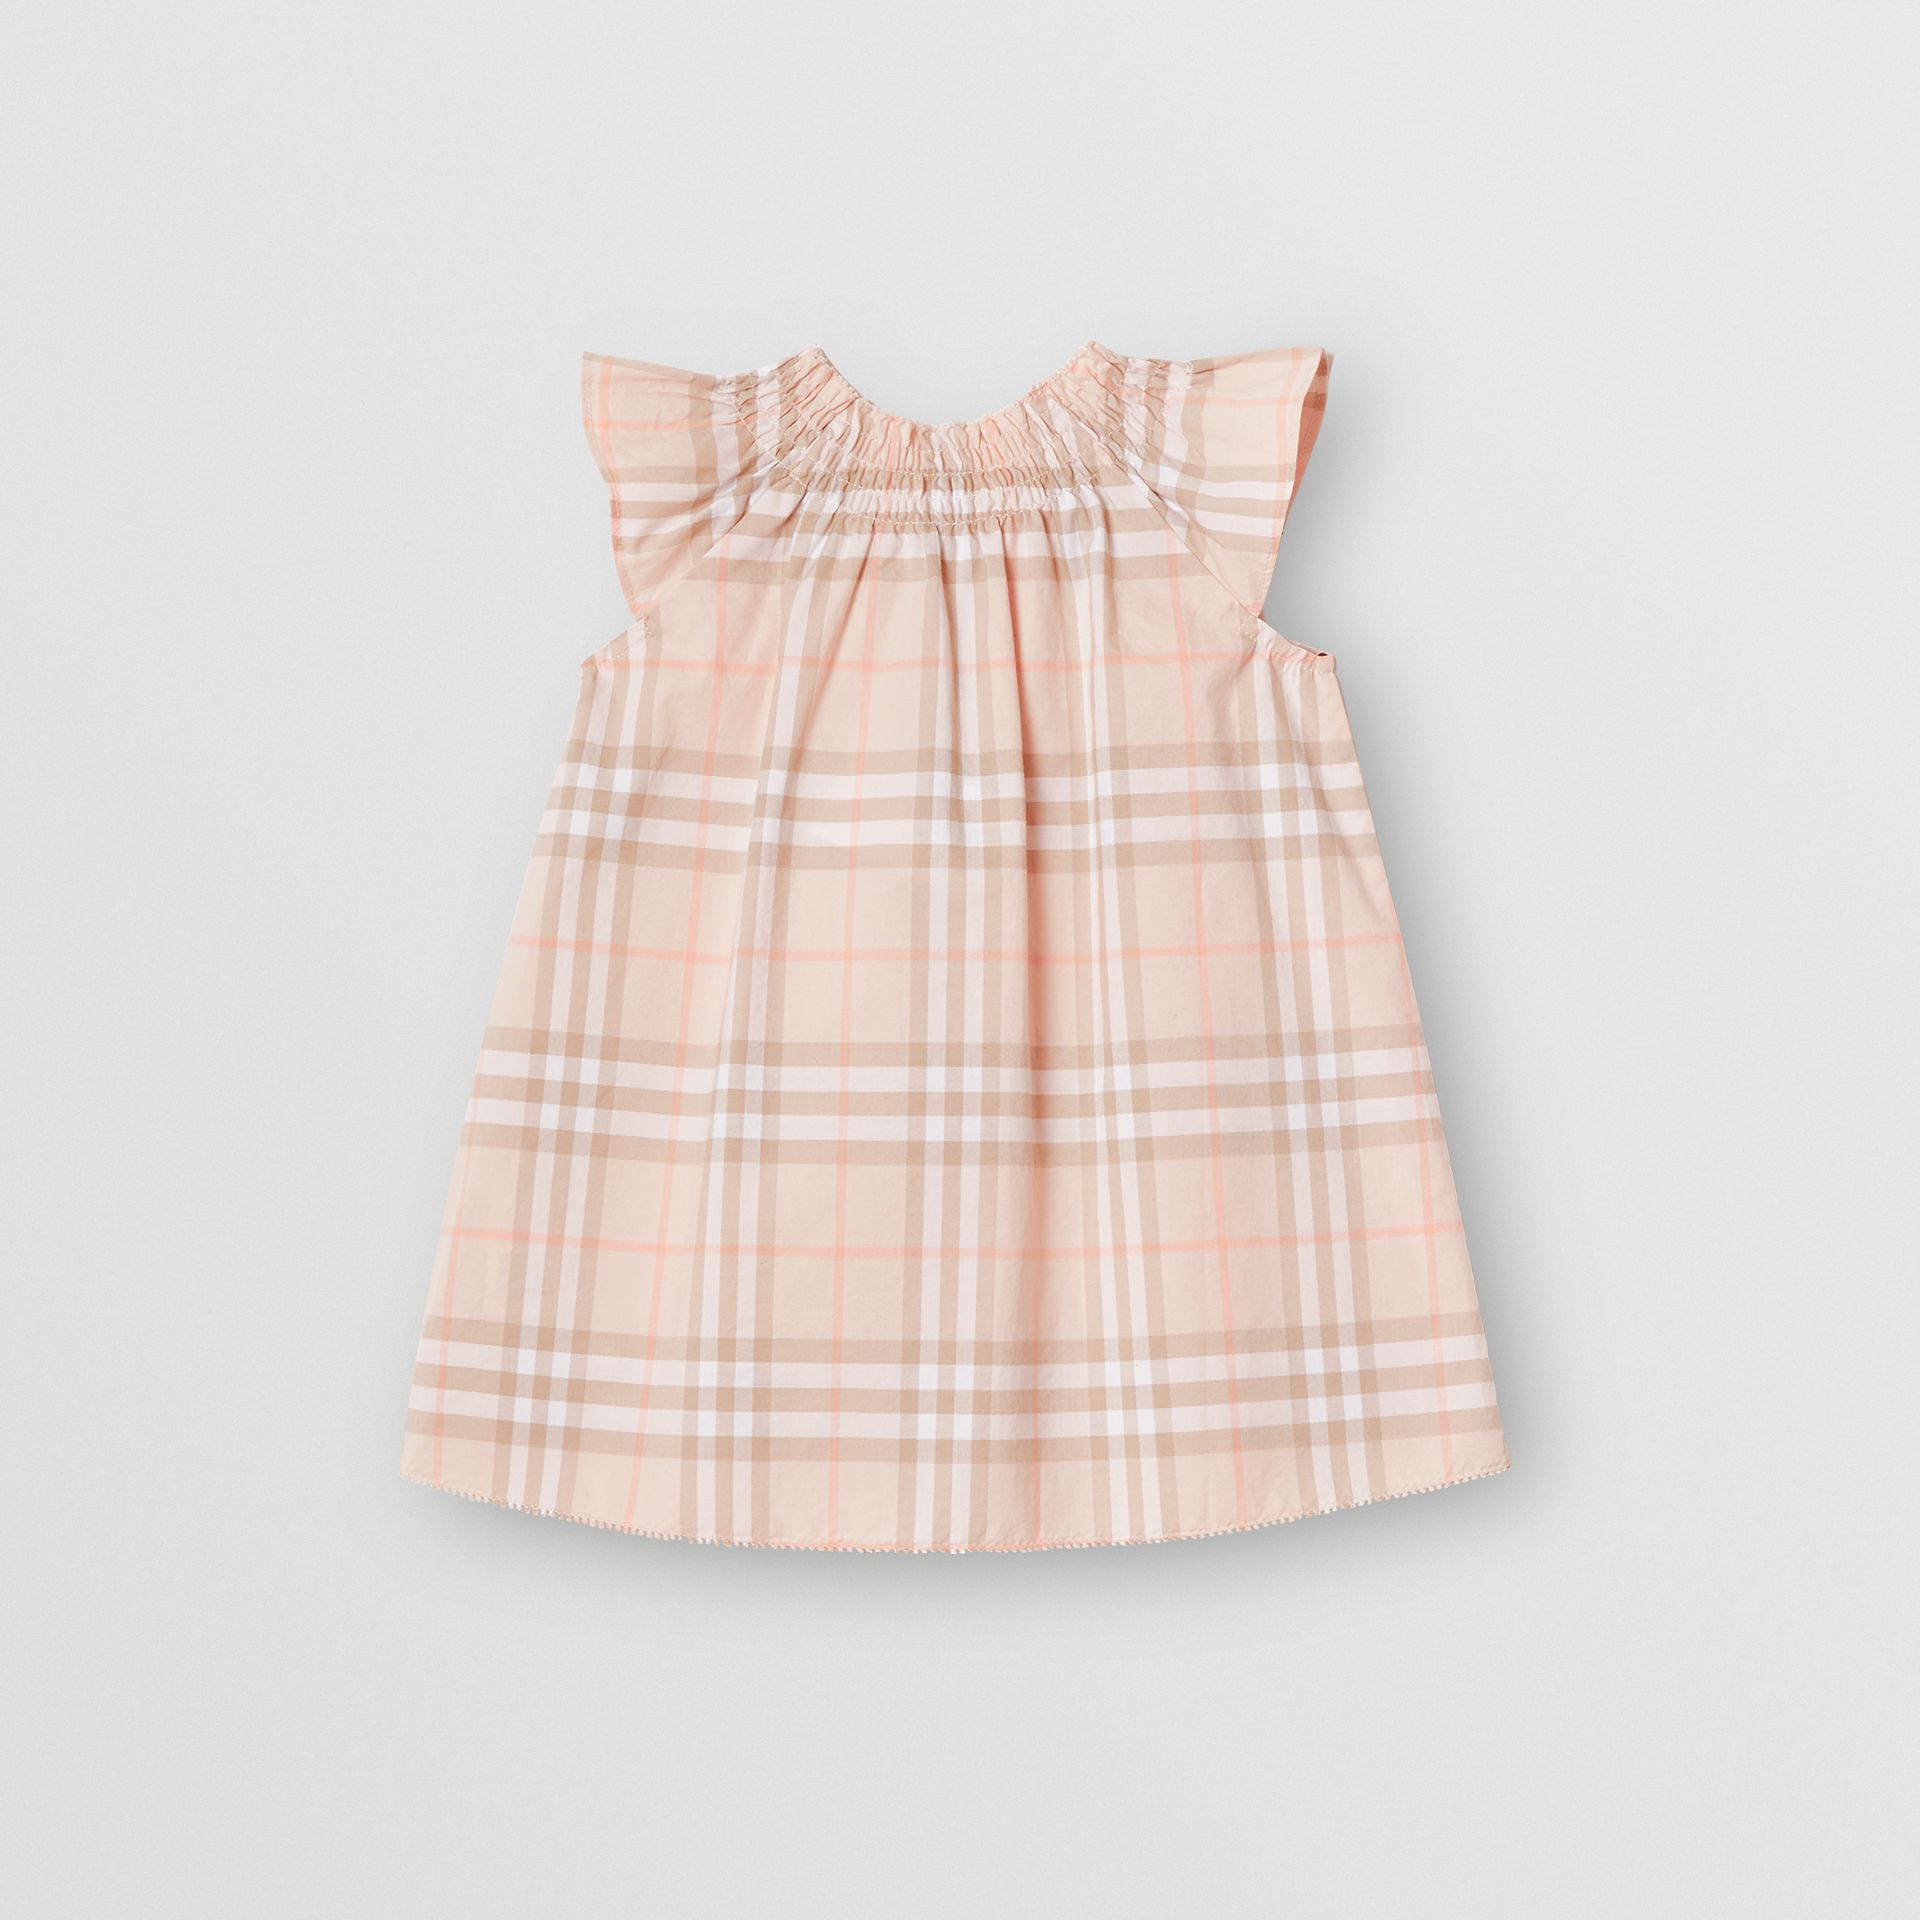 Smocked Vintage Check Cotton Dress in Pale Pink Apricot - Children | Burberry - gallery image 3